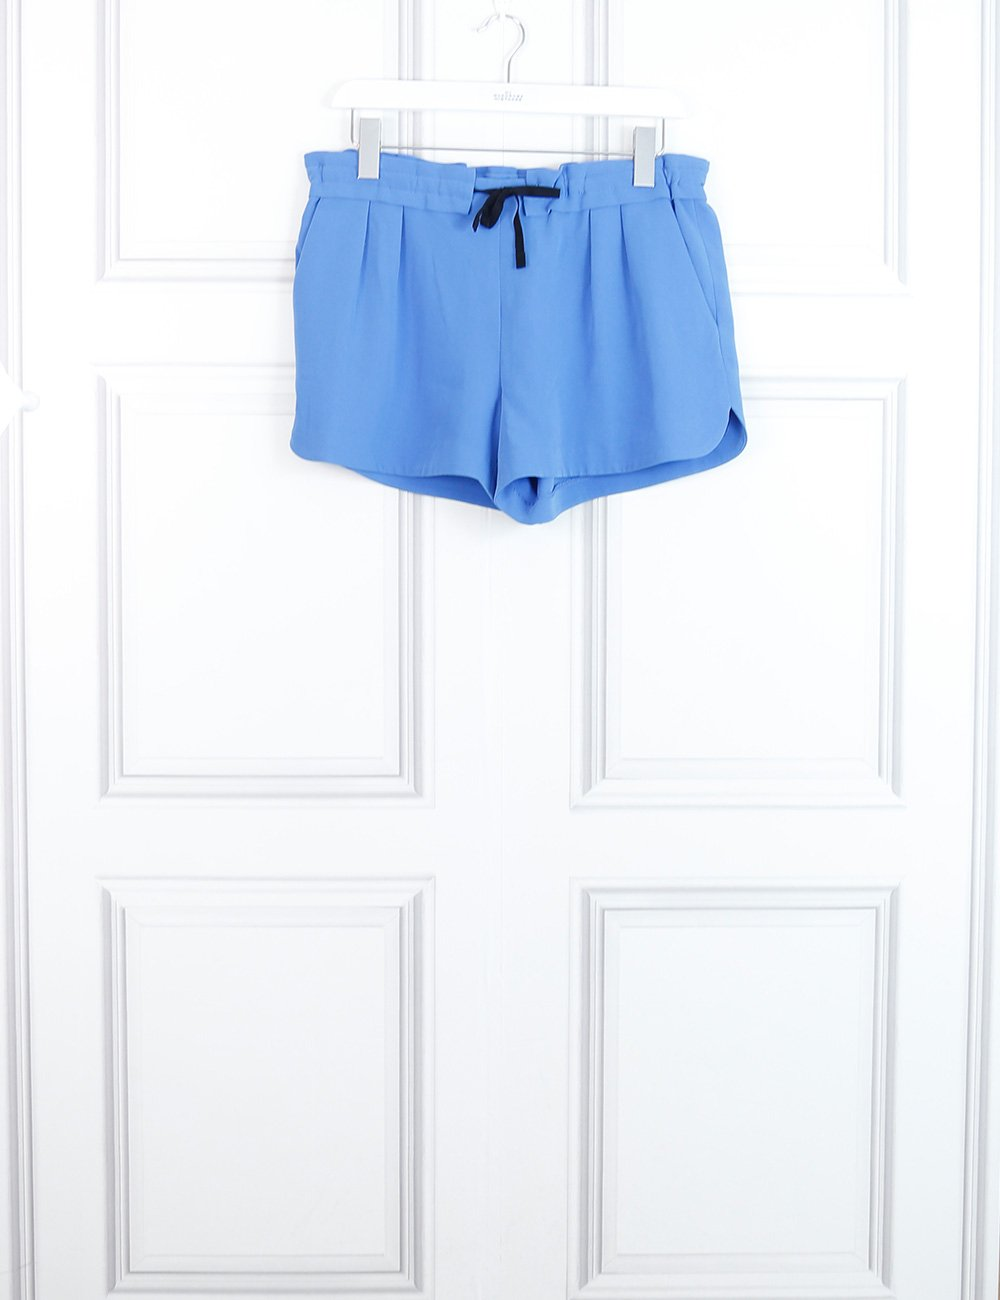 Rag&Bone blue elastic shorts 10 Uk- My Wardrobe Mistakes